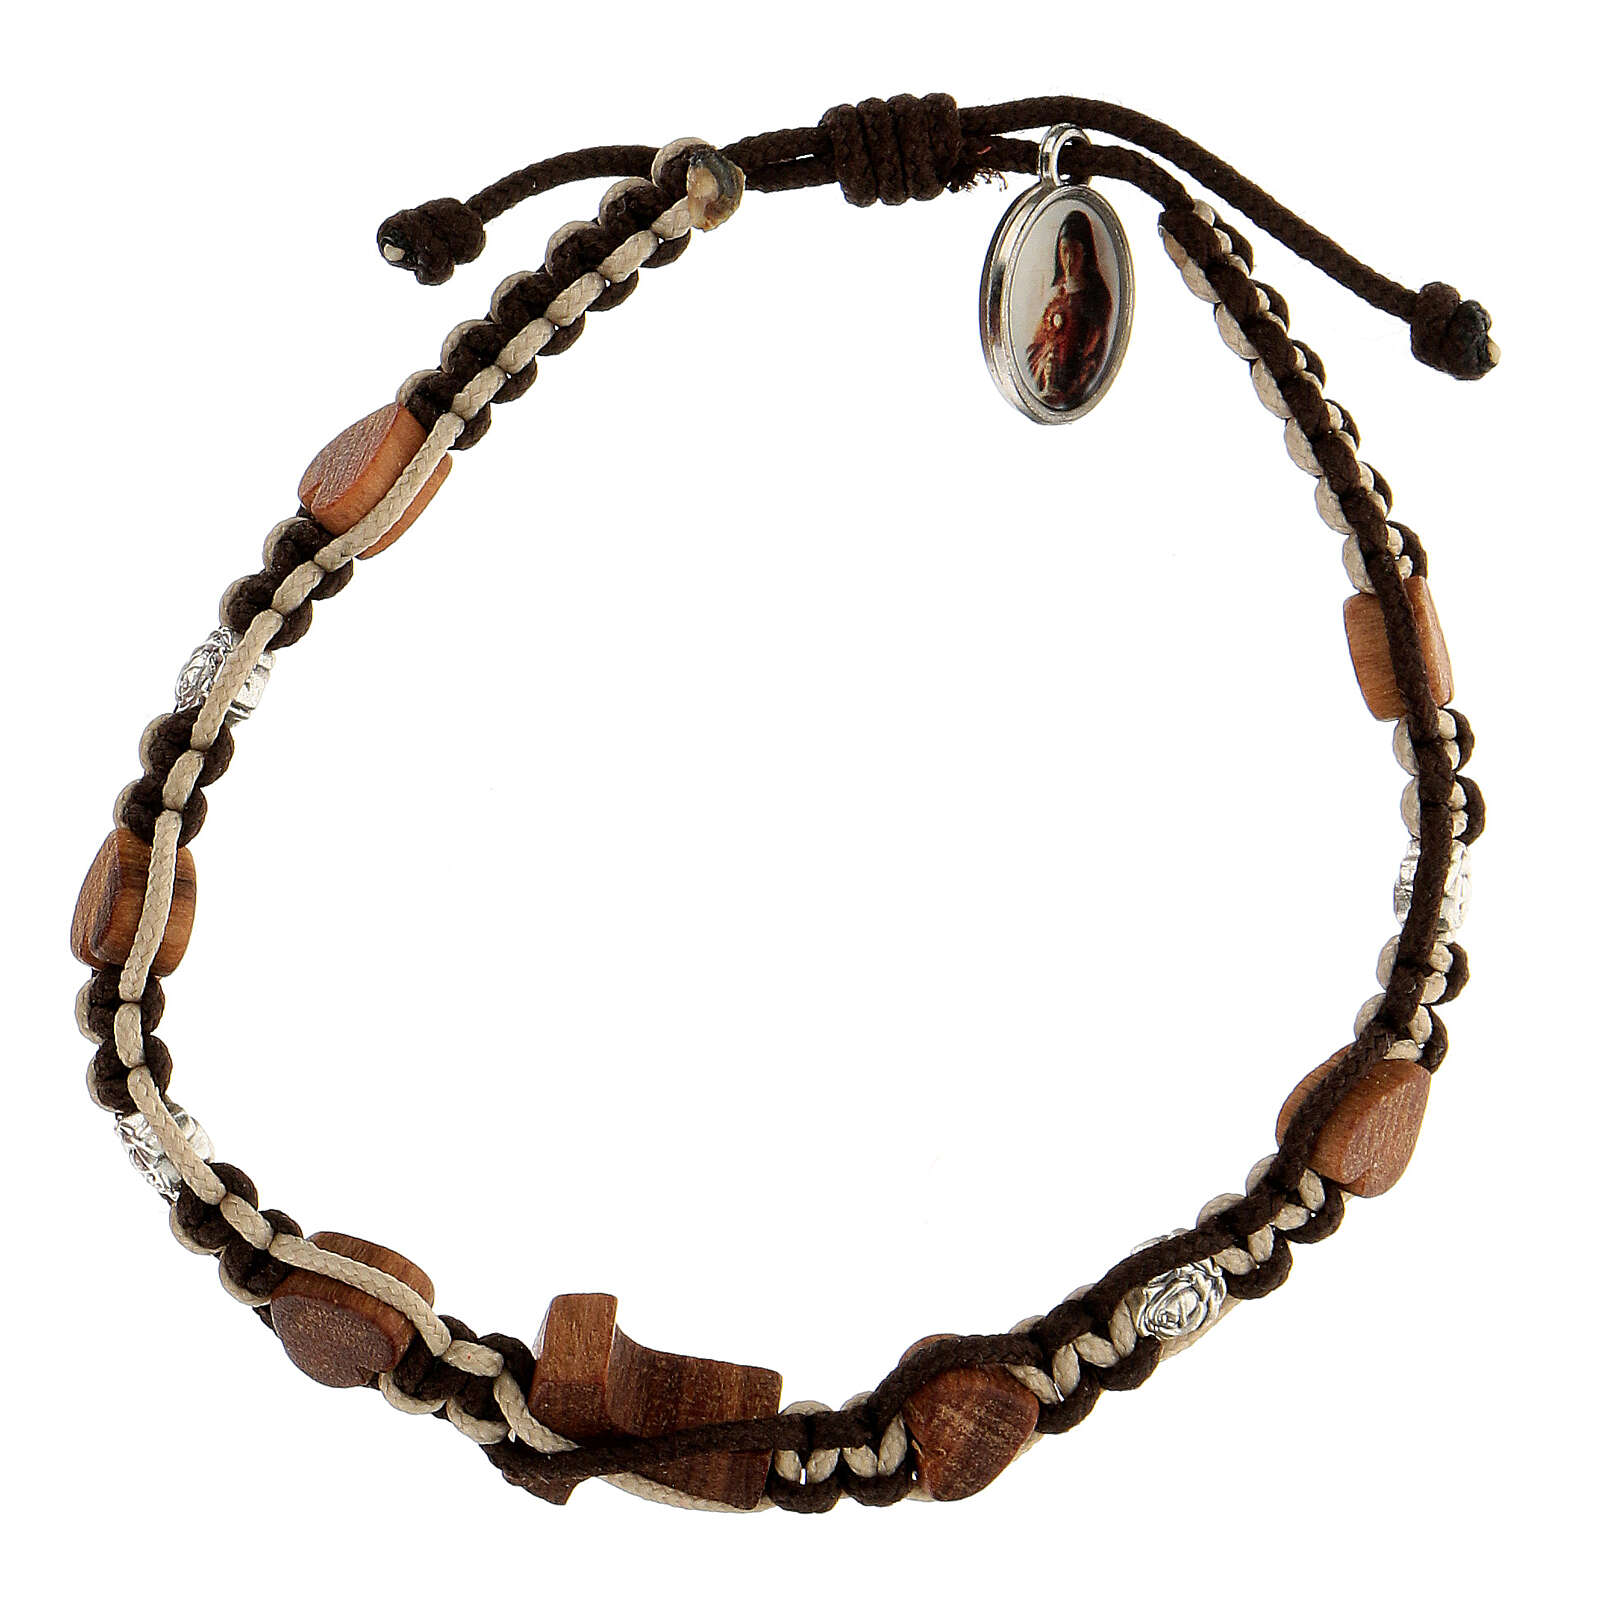 Bracelet Medjugorje hearts tau wood olive tree roses brown-beige rope 4